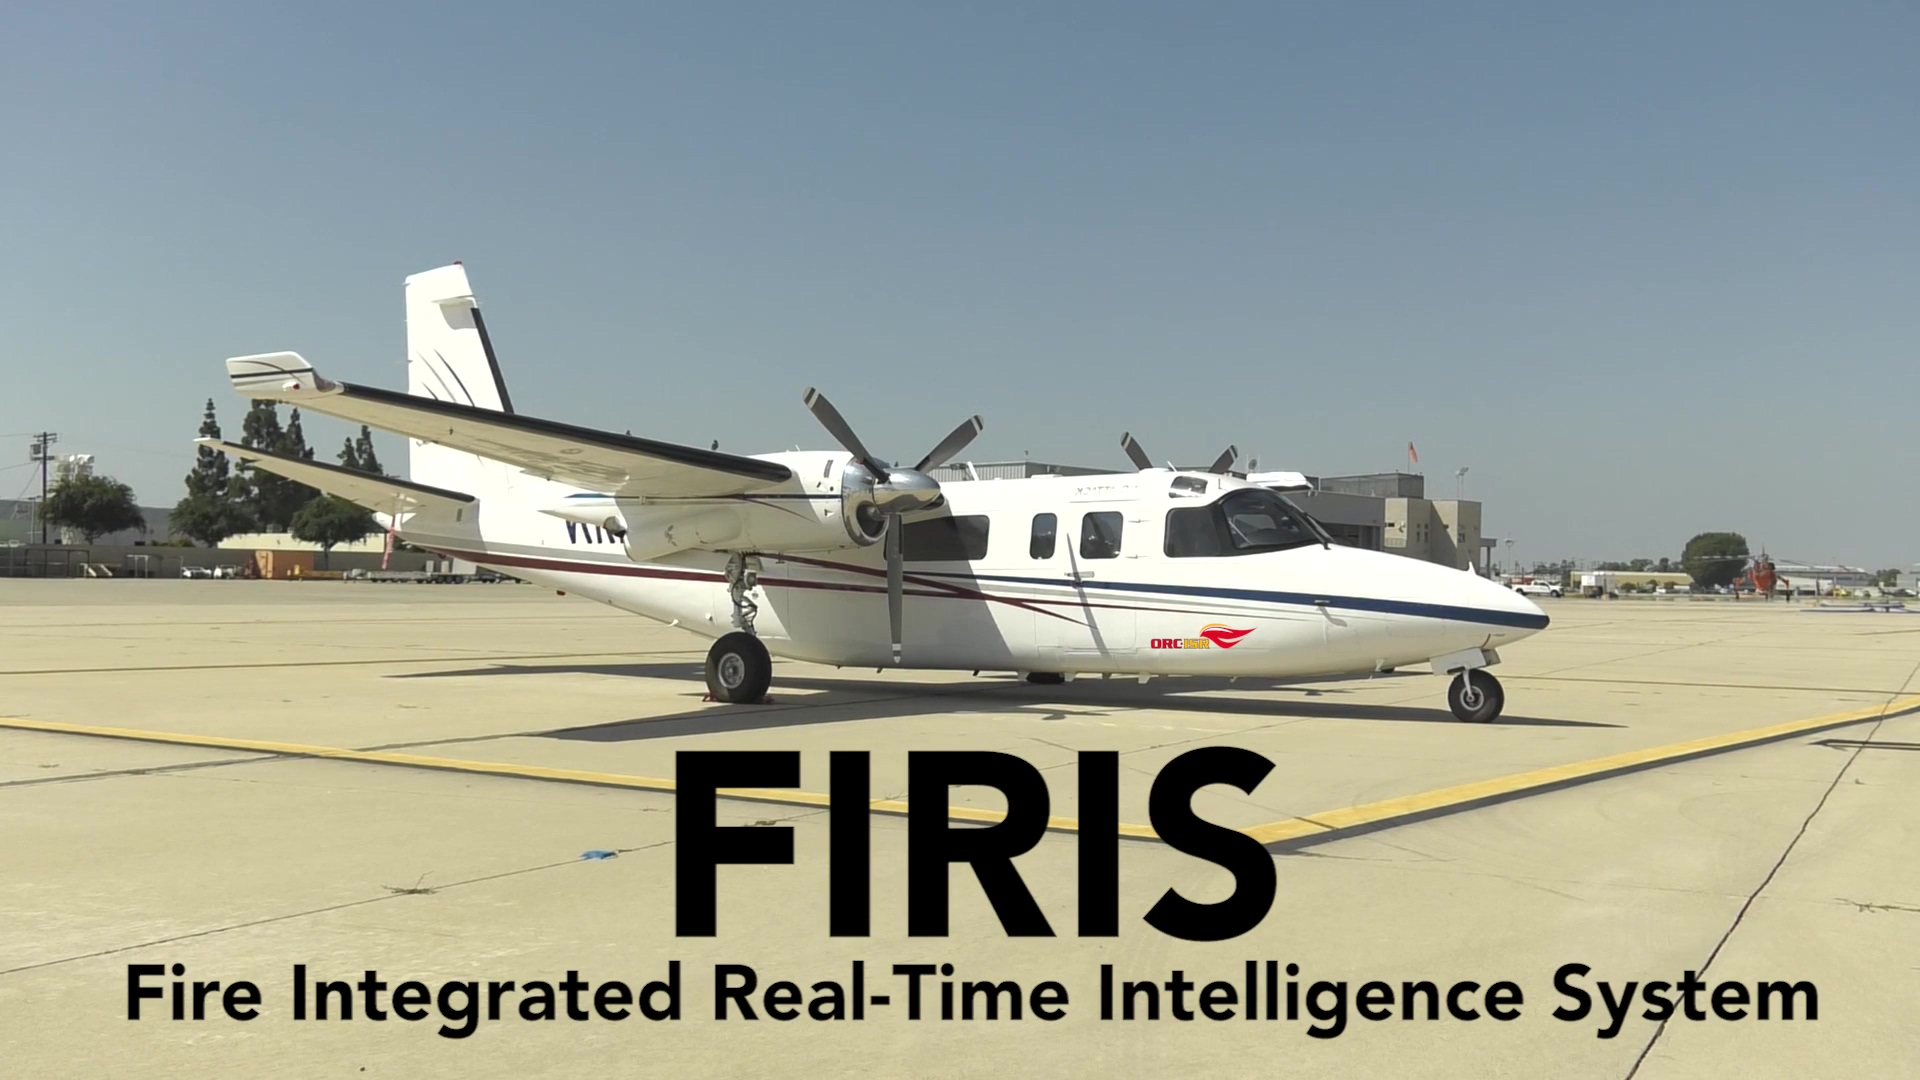 FIRIS - From Start to Finish